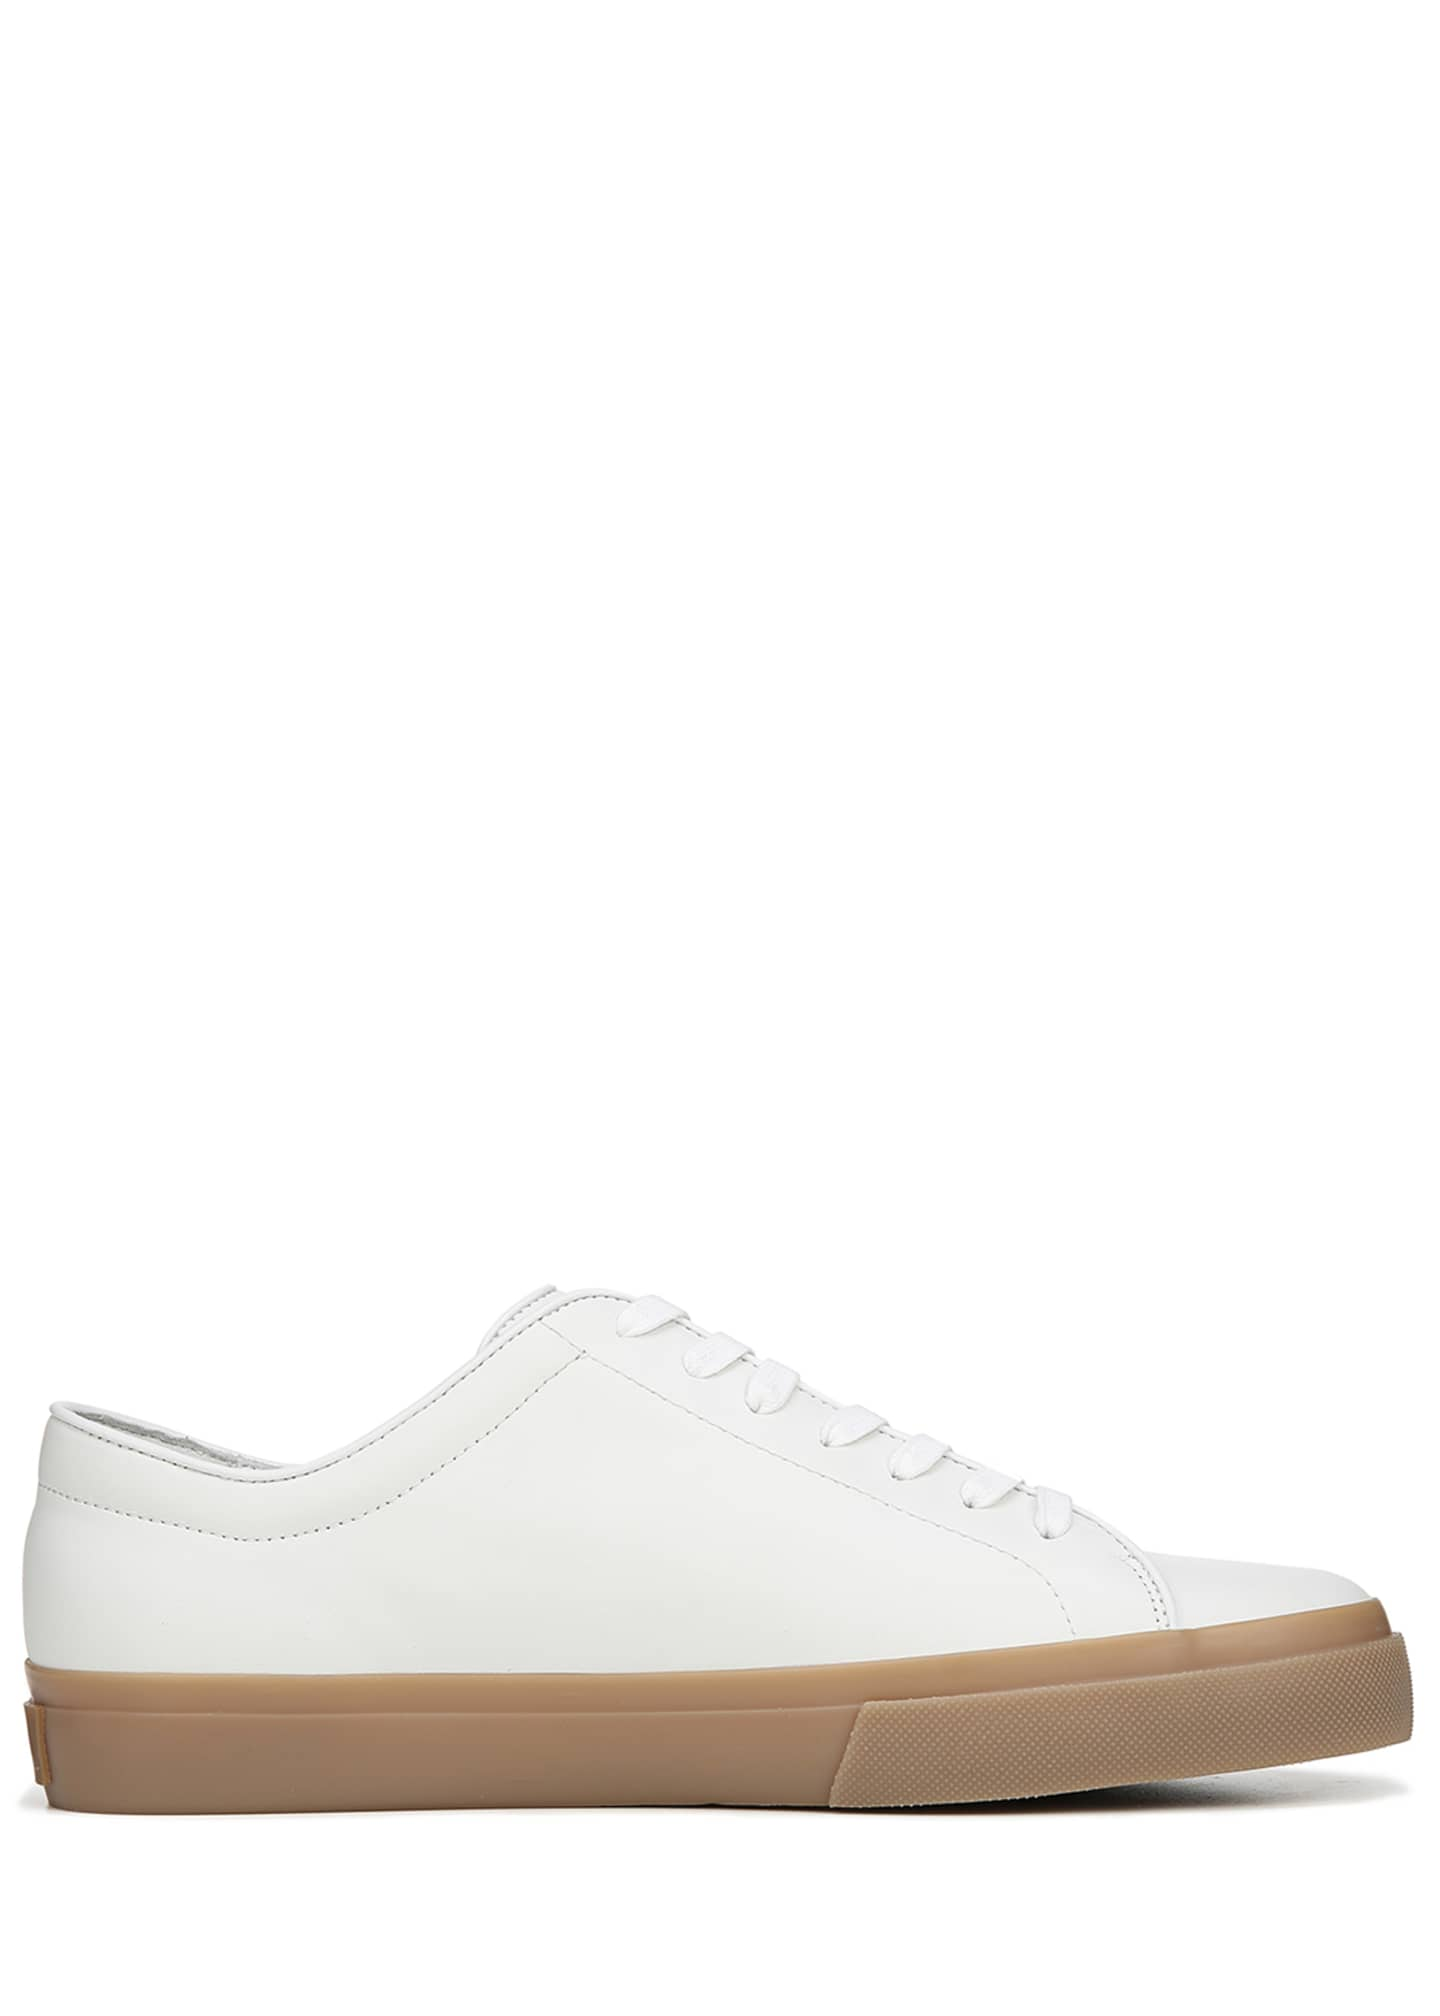 Image 2 of 5: Men's Farrell Calf Leather Low-Top Sneakers